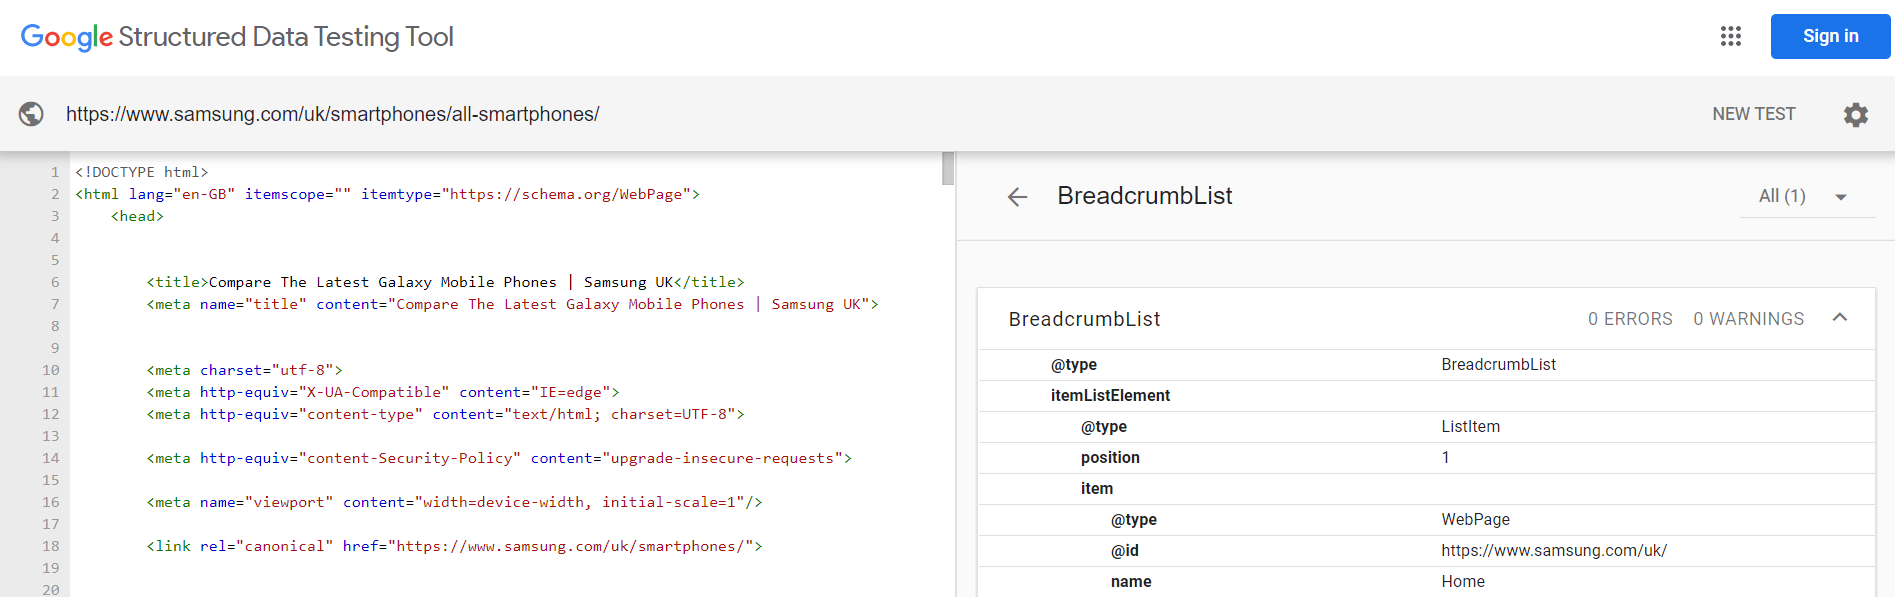 Breadcrumbs structured data testing tool